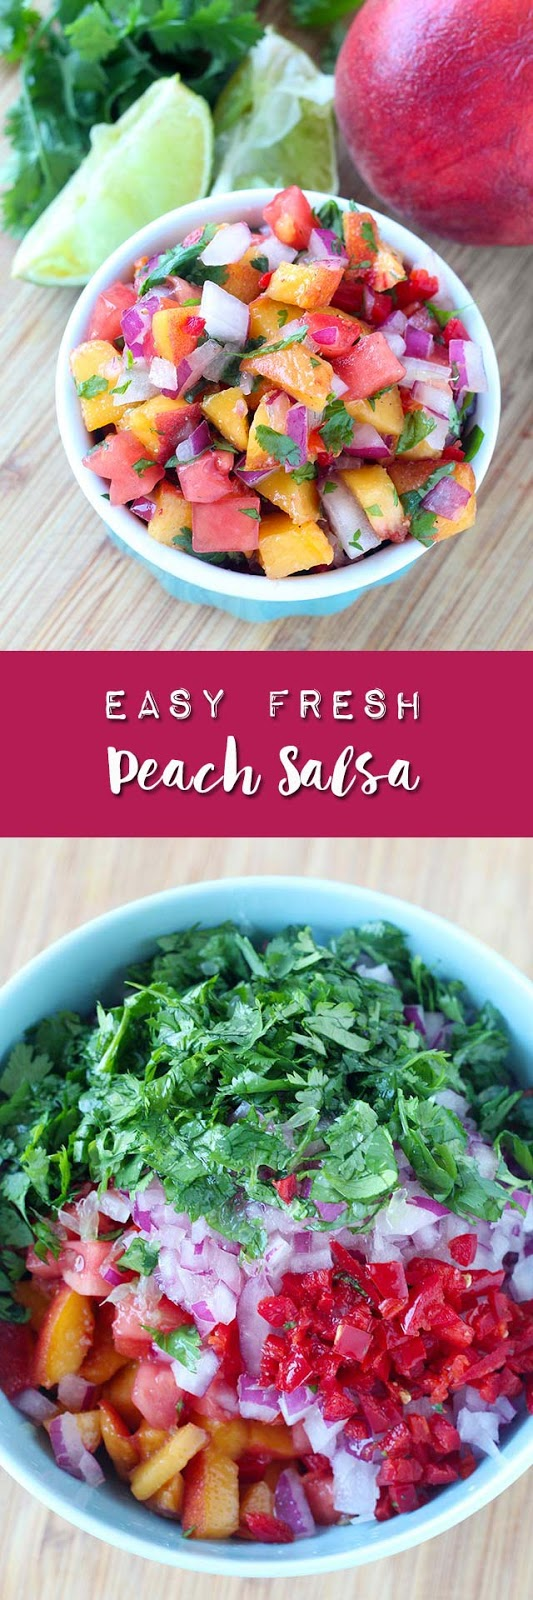 A quick & easy recipe for fresh peach salsa using simple ingredients like red onion, tomato, cilantro, lime juice, jalapeno, and pantry spices. Serve it as a garnish for pork chops, grilled chicken, or baked fish, as a dip with your favorite chips, or even as a sweet & spicy condiment alongside your favorite foods.